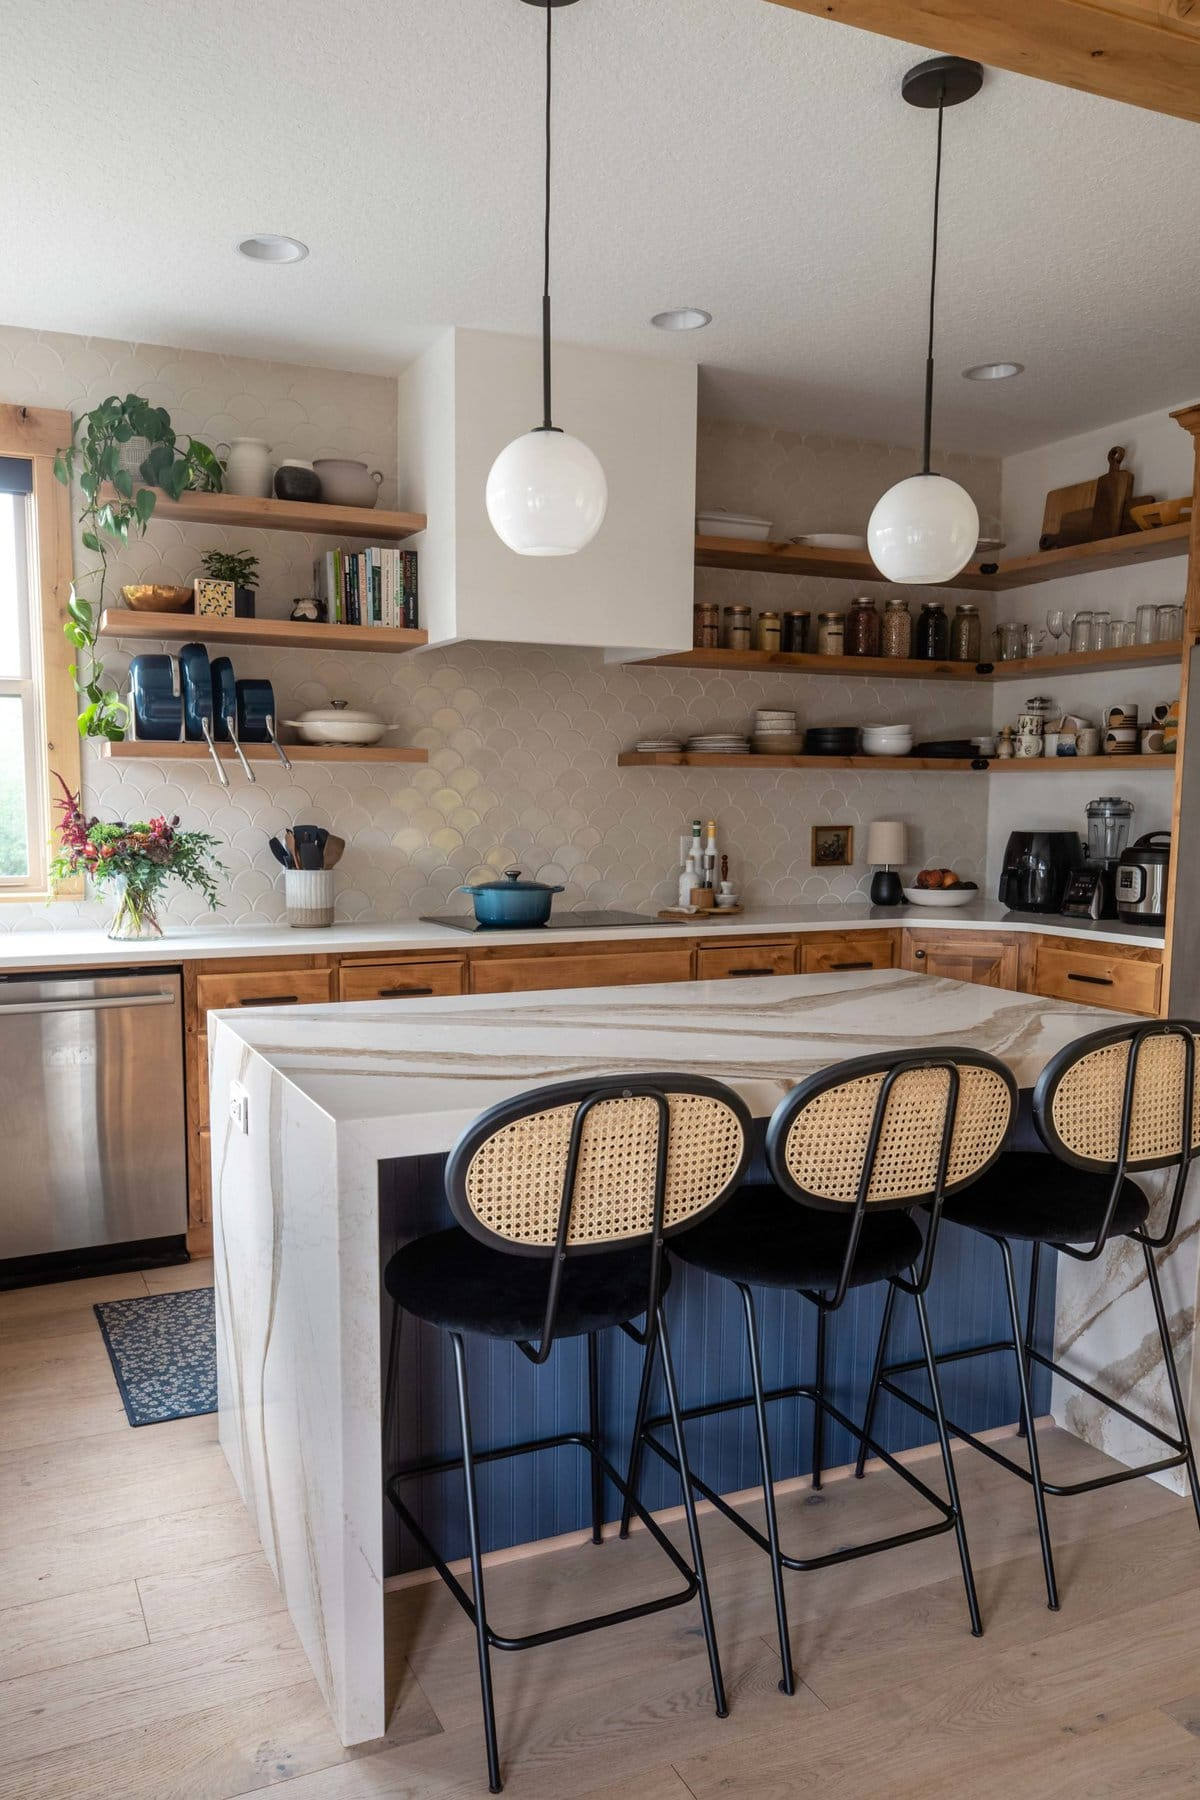 Side angle view of kitchen with waterfall island, cane counter stools, a full tile backsplash, and wood floating shelves filled with various items